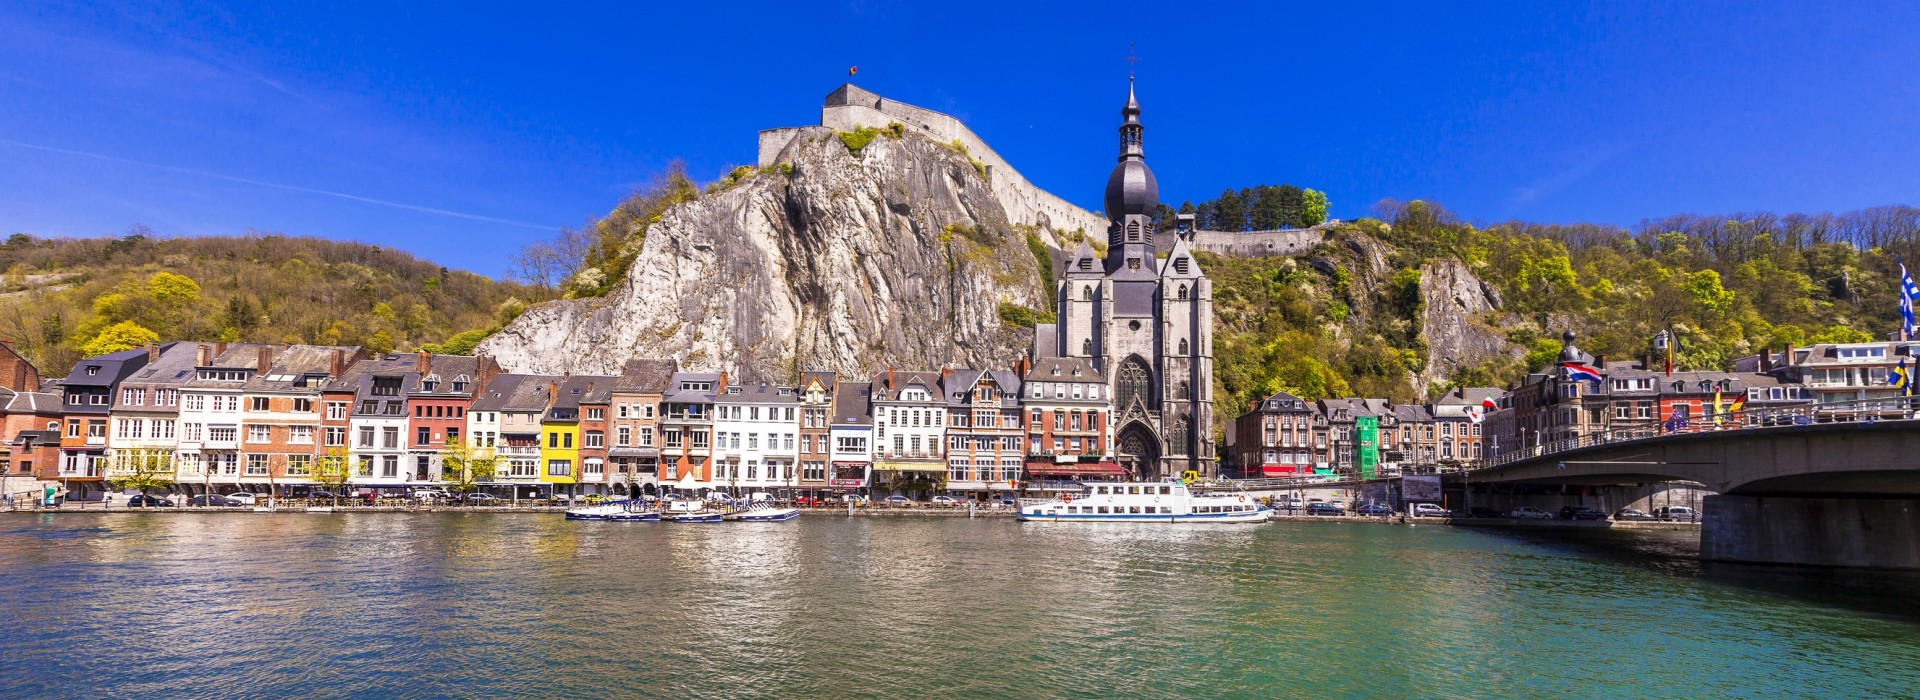 Travelling in Belgium - Tours and Vacation Packages in Belgium